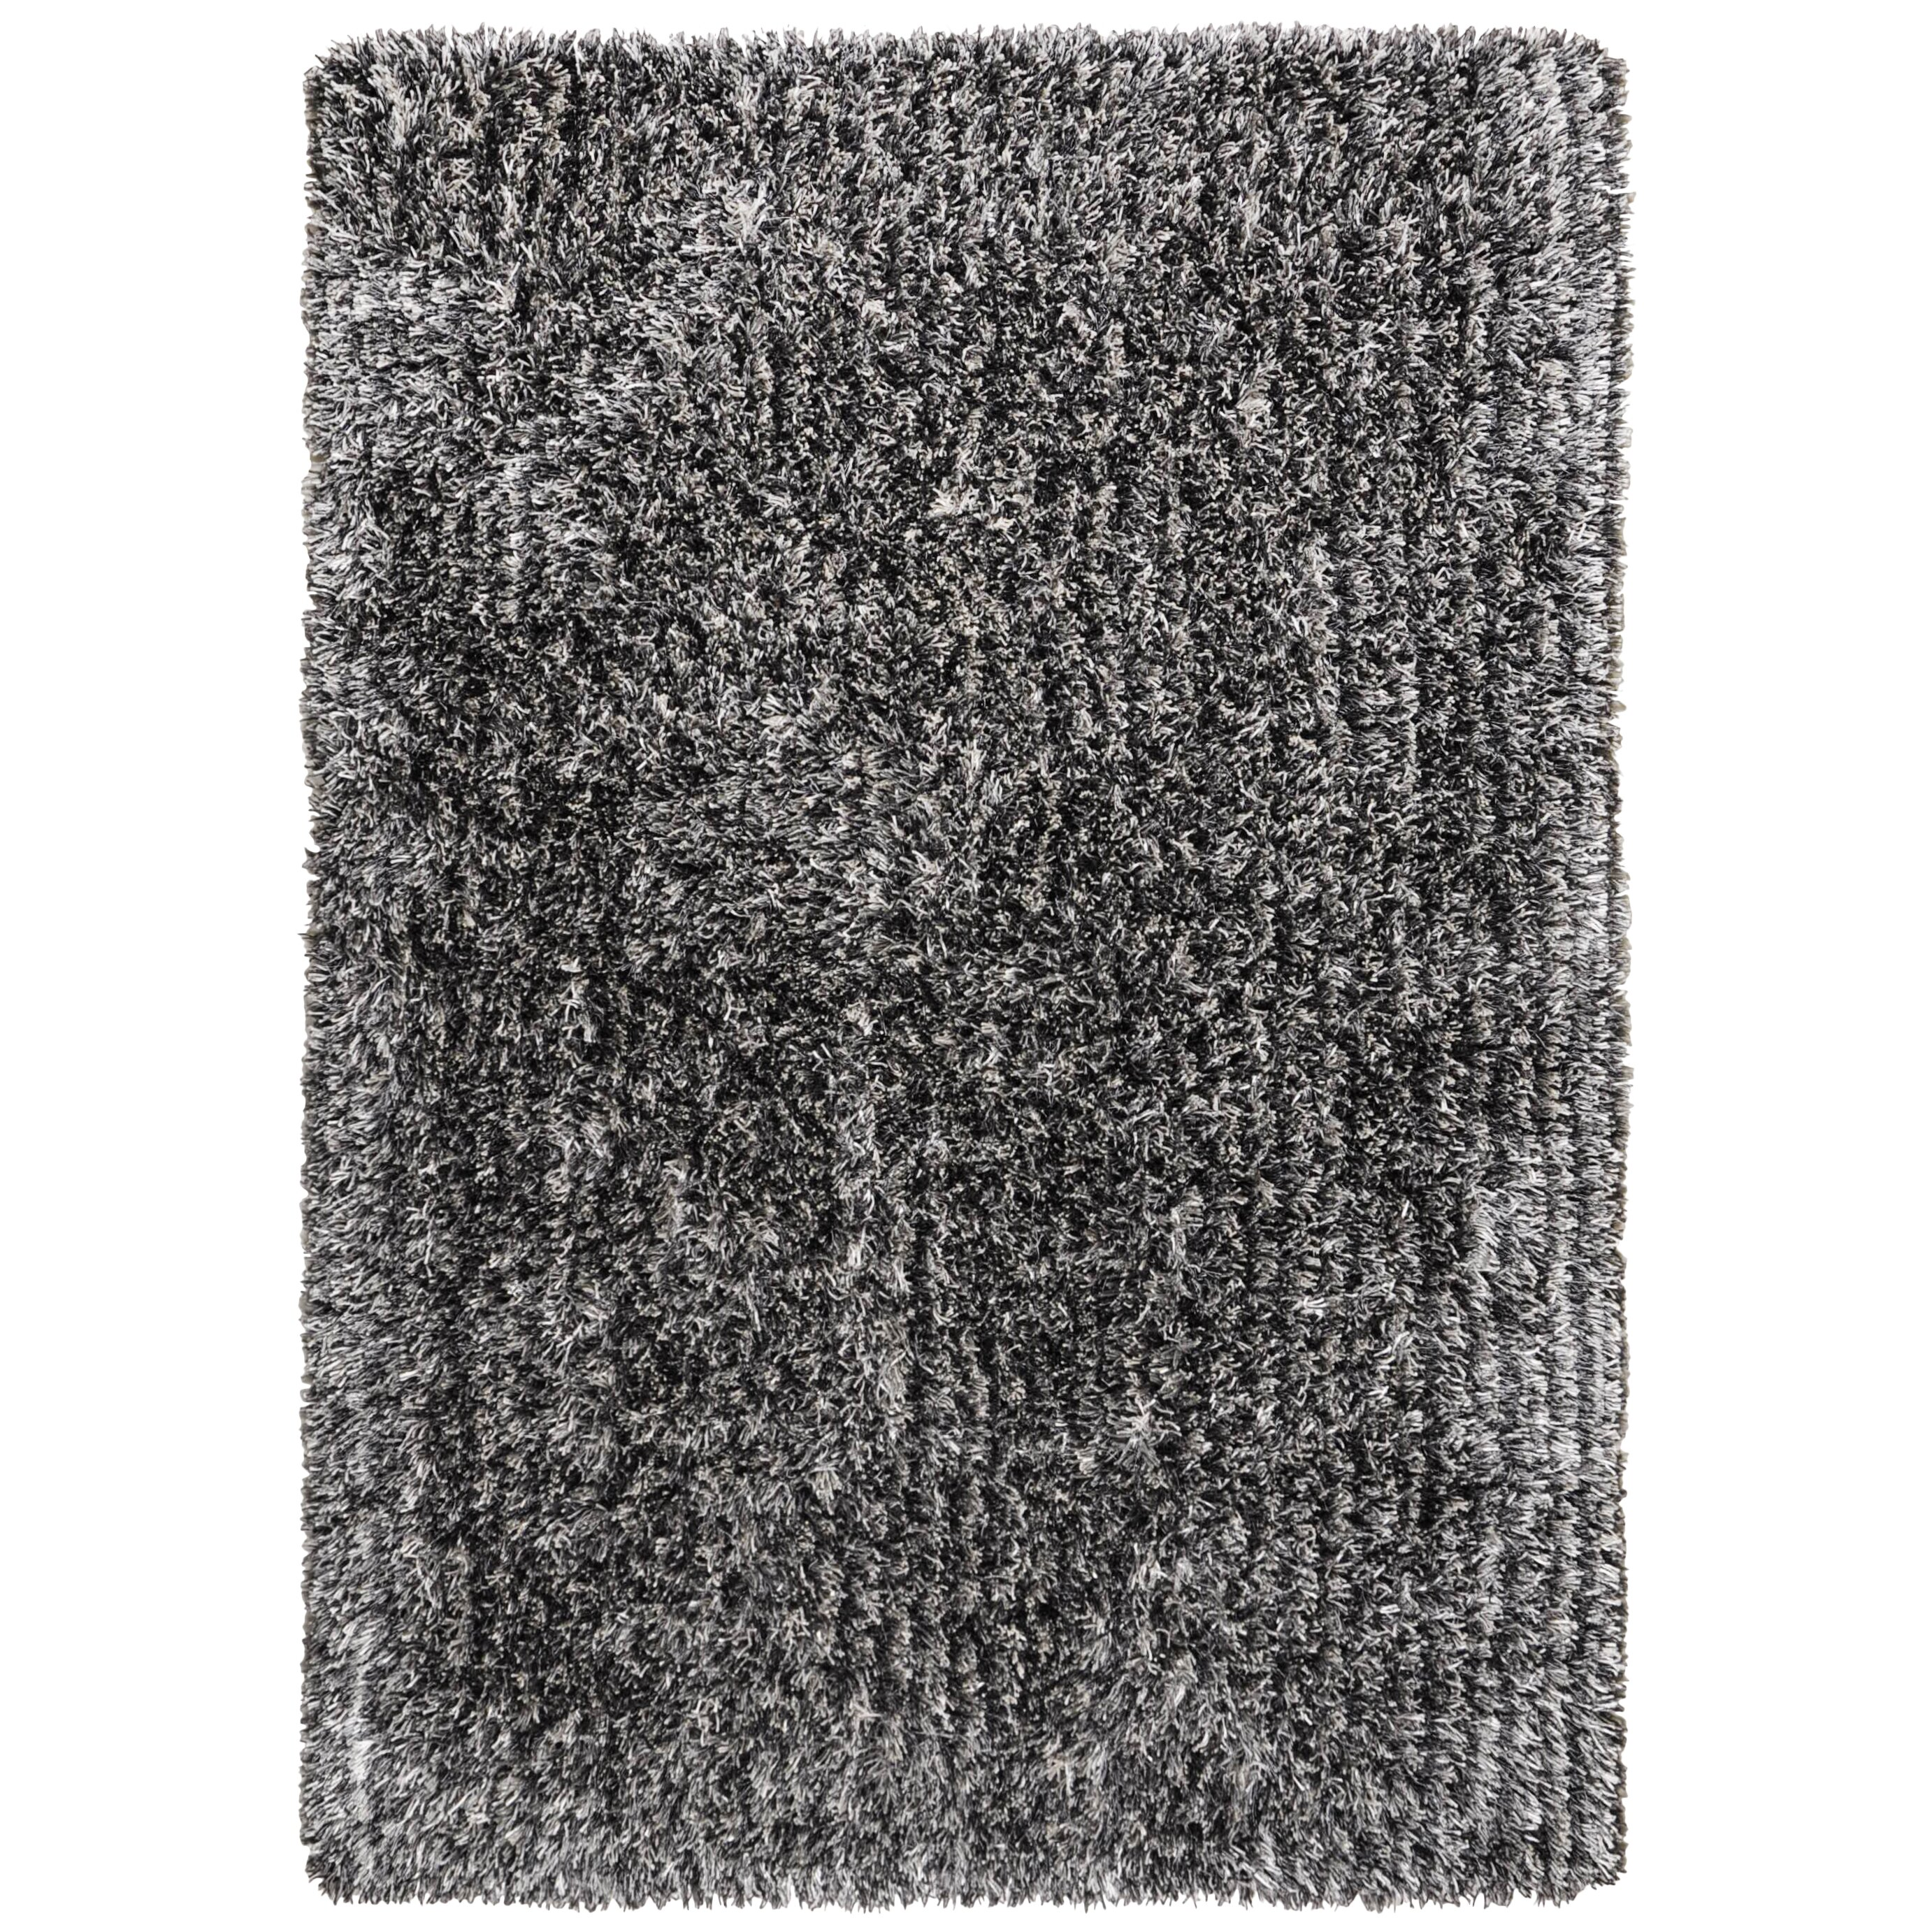 Girly Rugs For Bedroom: Theko Girly Hand-Tufted Grey Area Rug & Reviews